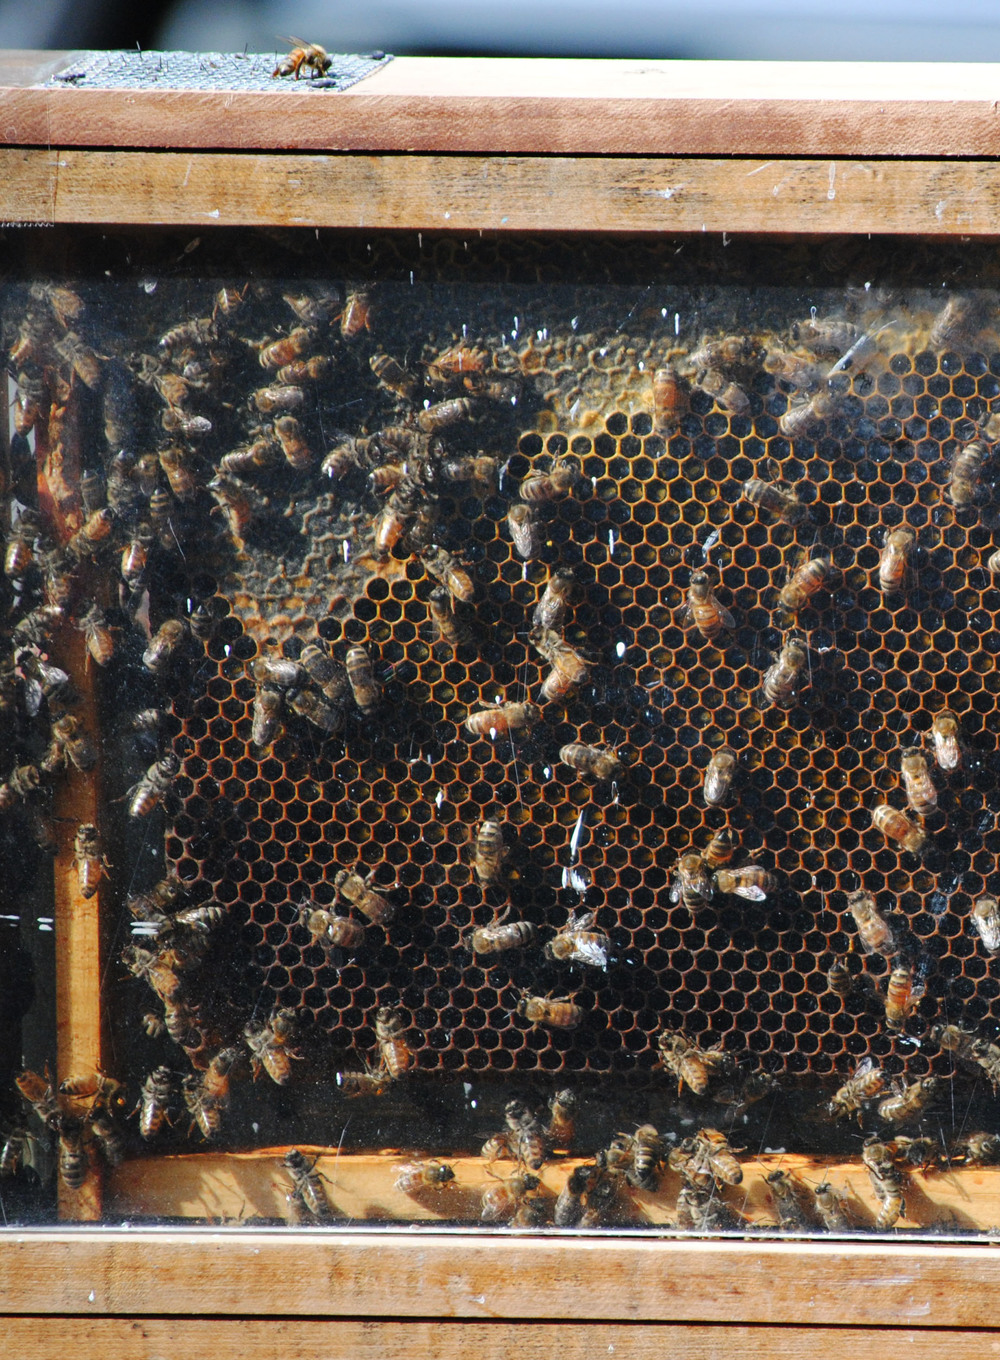 Urban Bee Company honey bees visiting the park.